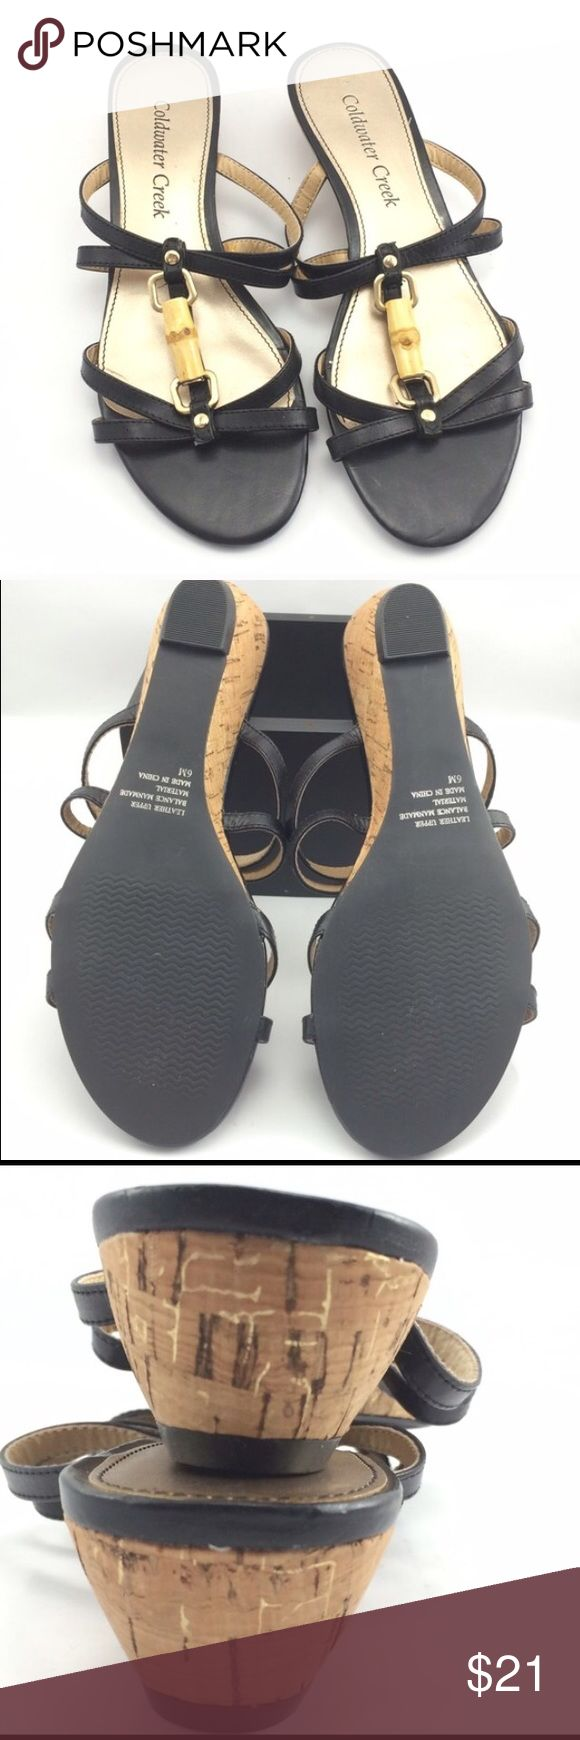 "Coldwater Creek cork wedge sandals NWOB  Such cute details on on the leather uppers! 1 1/2"" cork wedge Coldwater Creek Shoes Sandals"